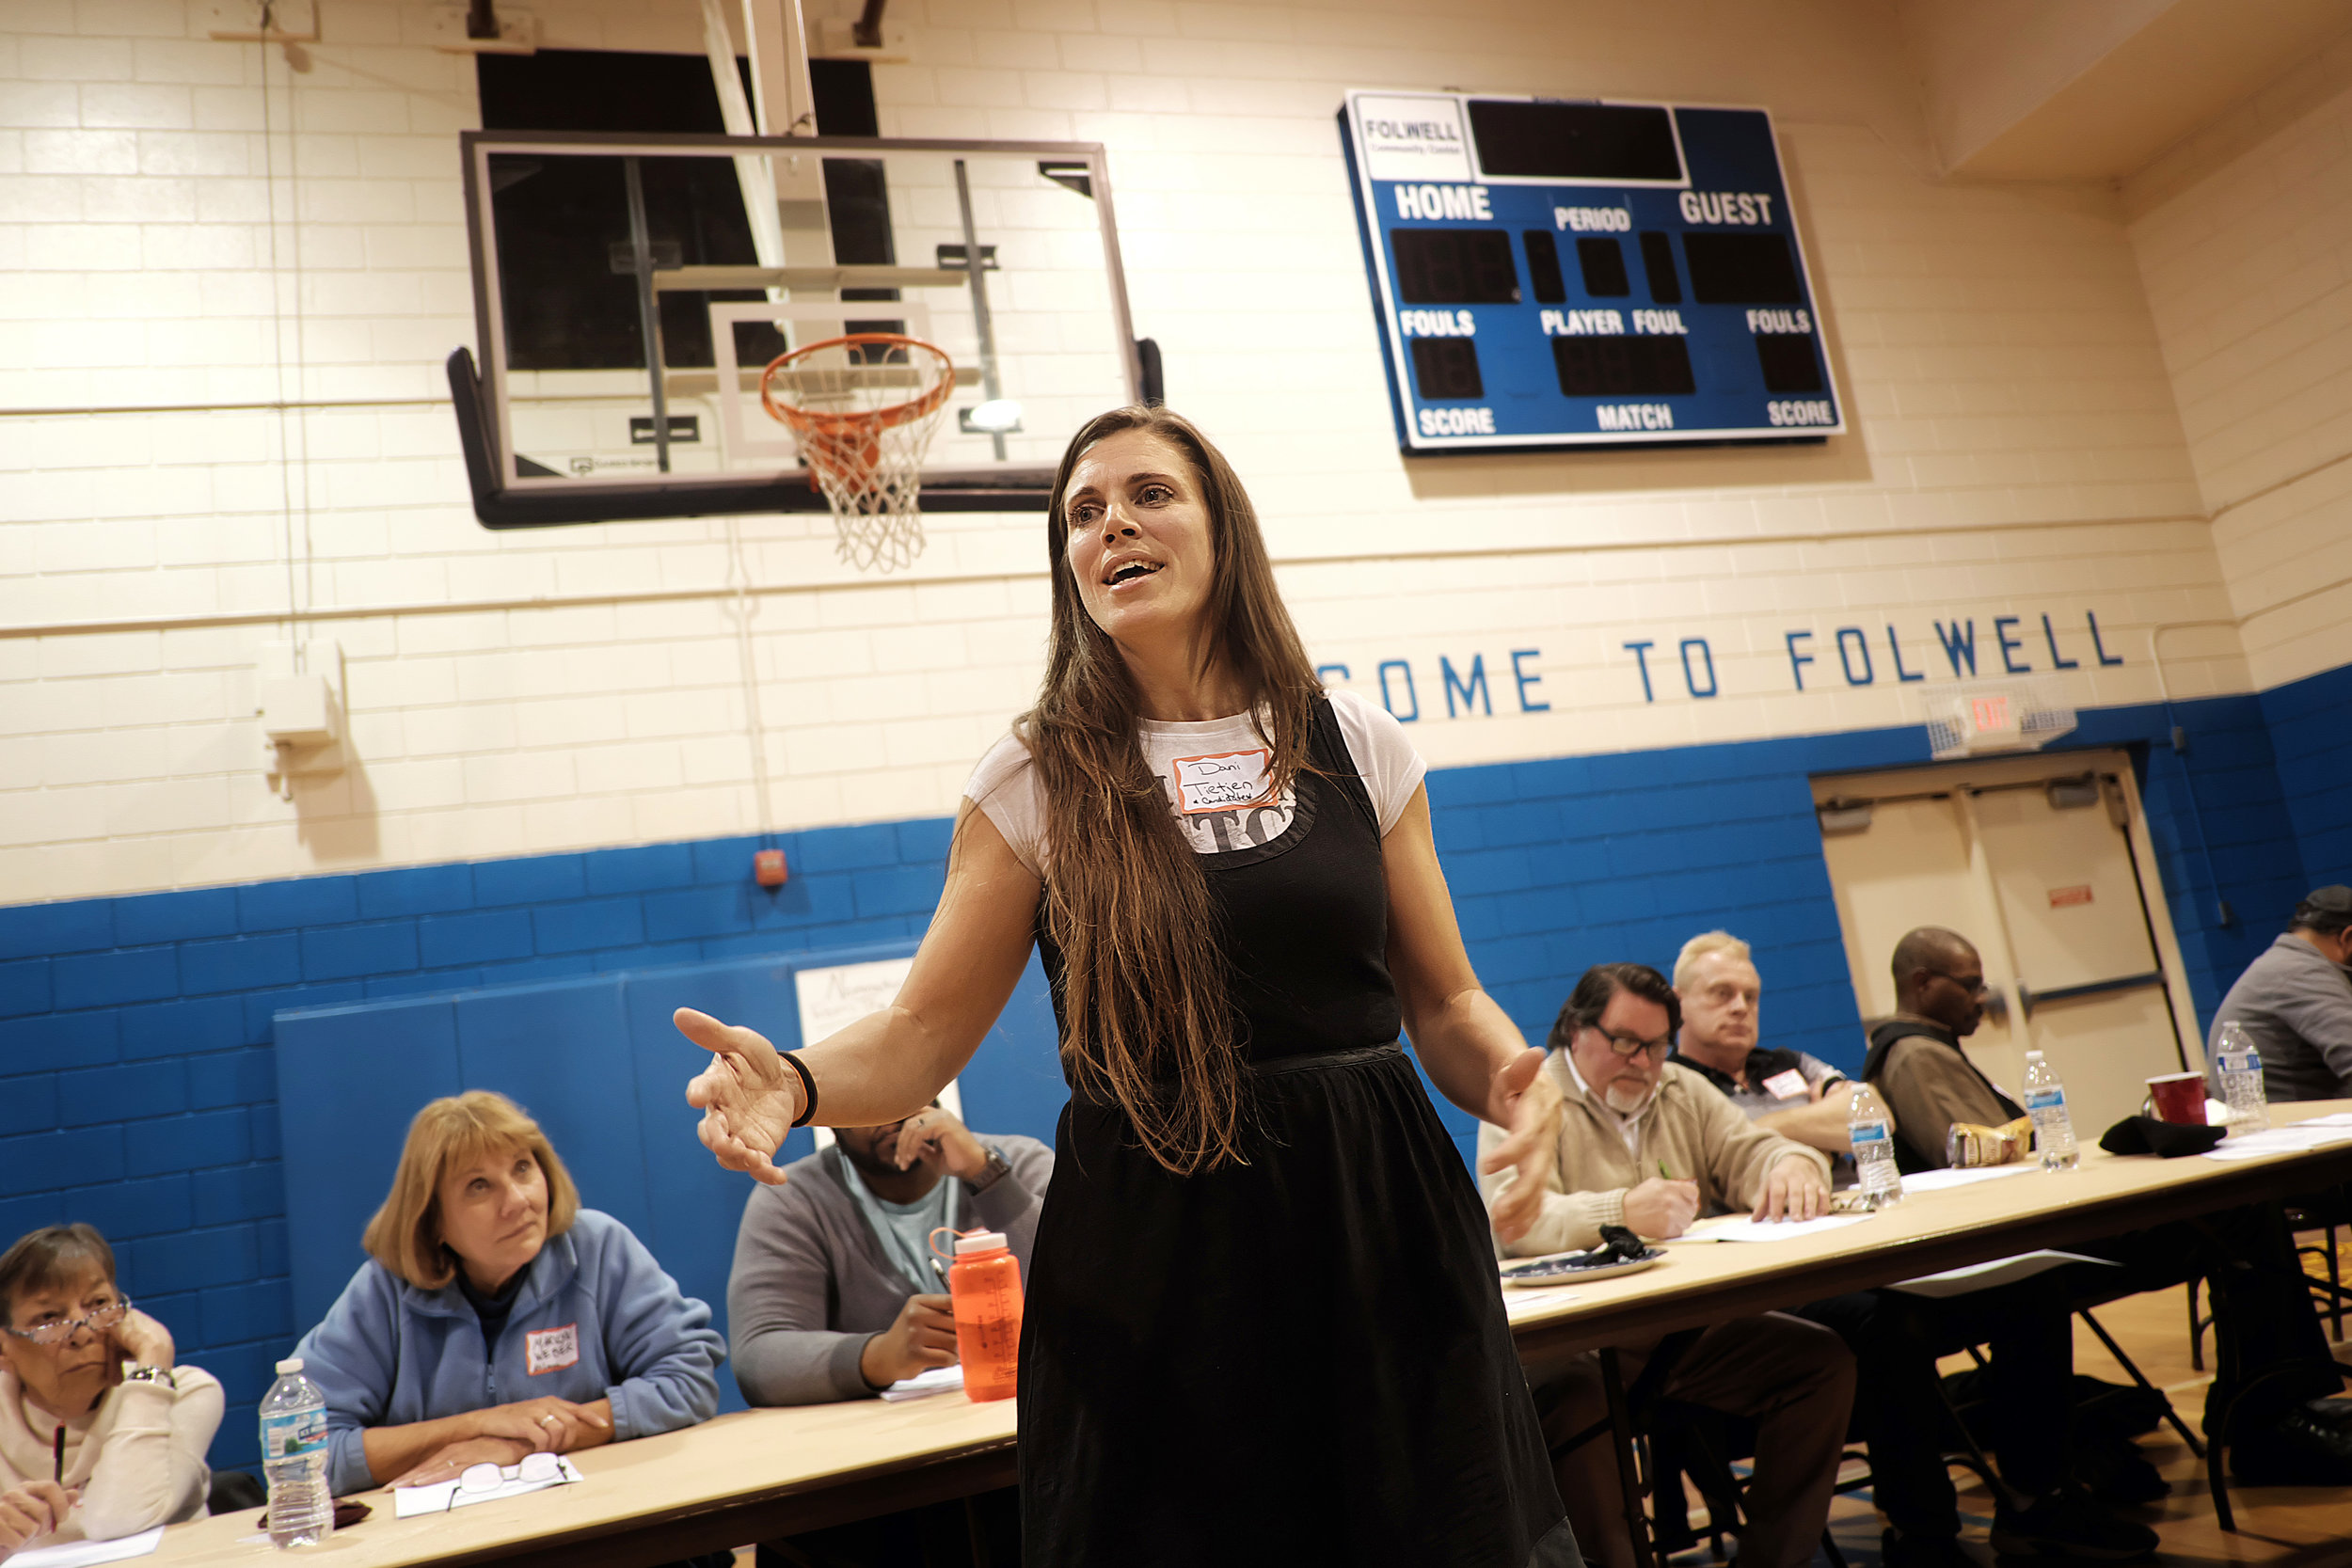 Tietjen, a Folwell Neighborhood Association board member, speaks to the crowd of over 100 people who attended the association's annual meeting on Nov.13. Photo by David Pierini.